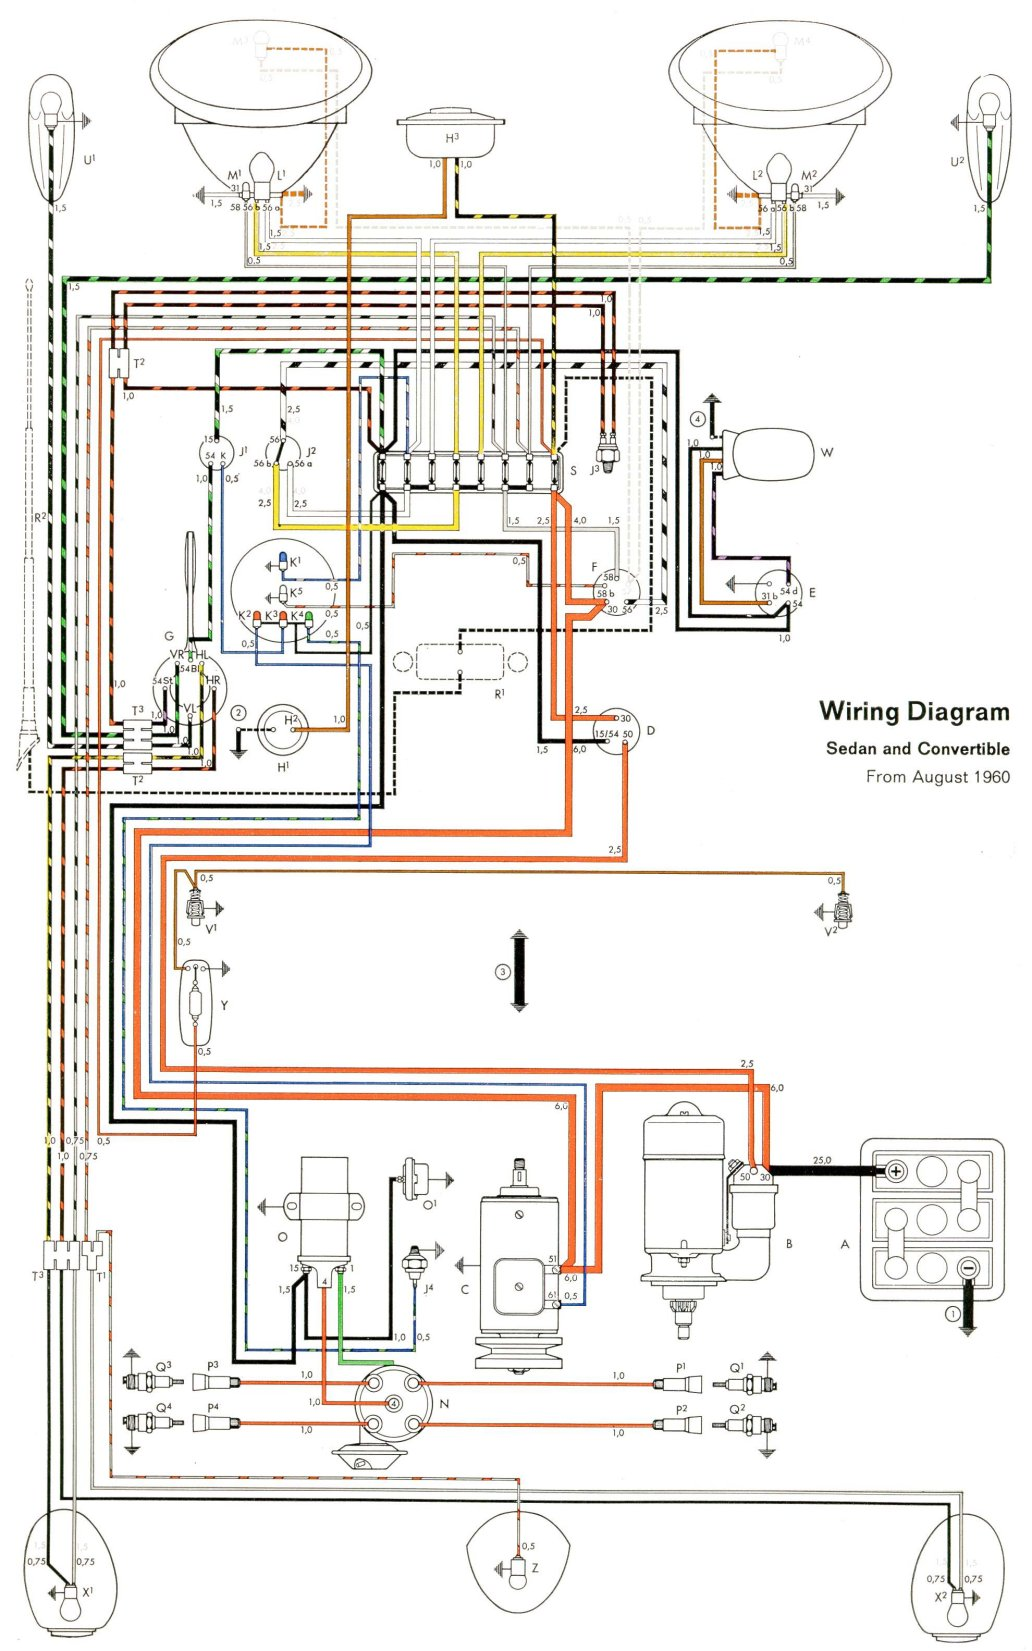 bug_61 thesamba com type 1 wiring diagrams 1974 super beetle wiring diagram at soozxer.org